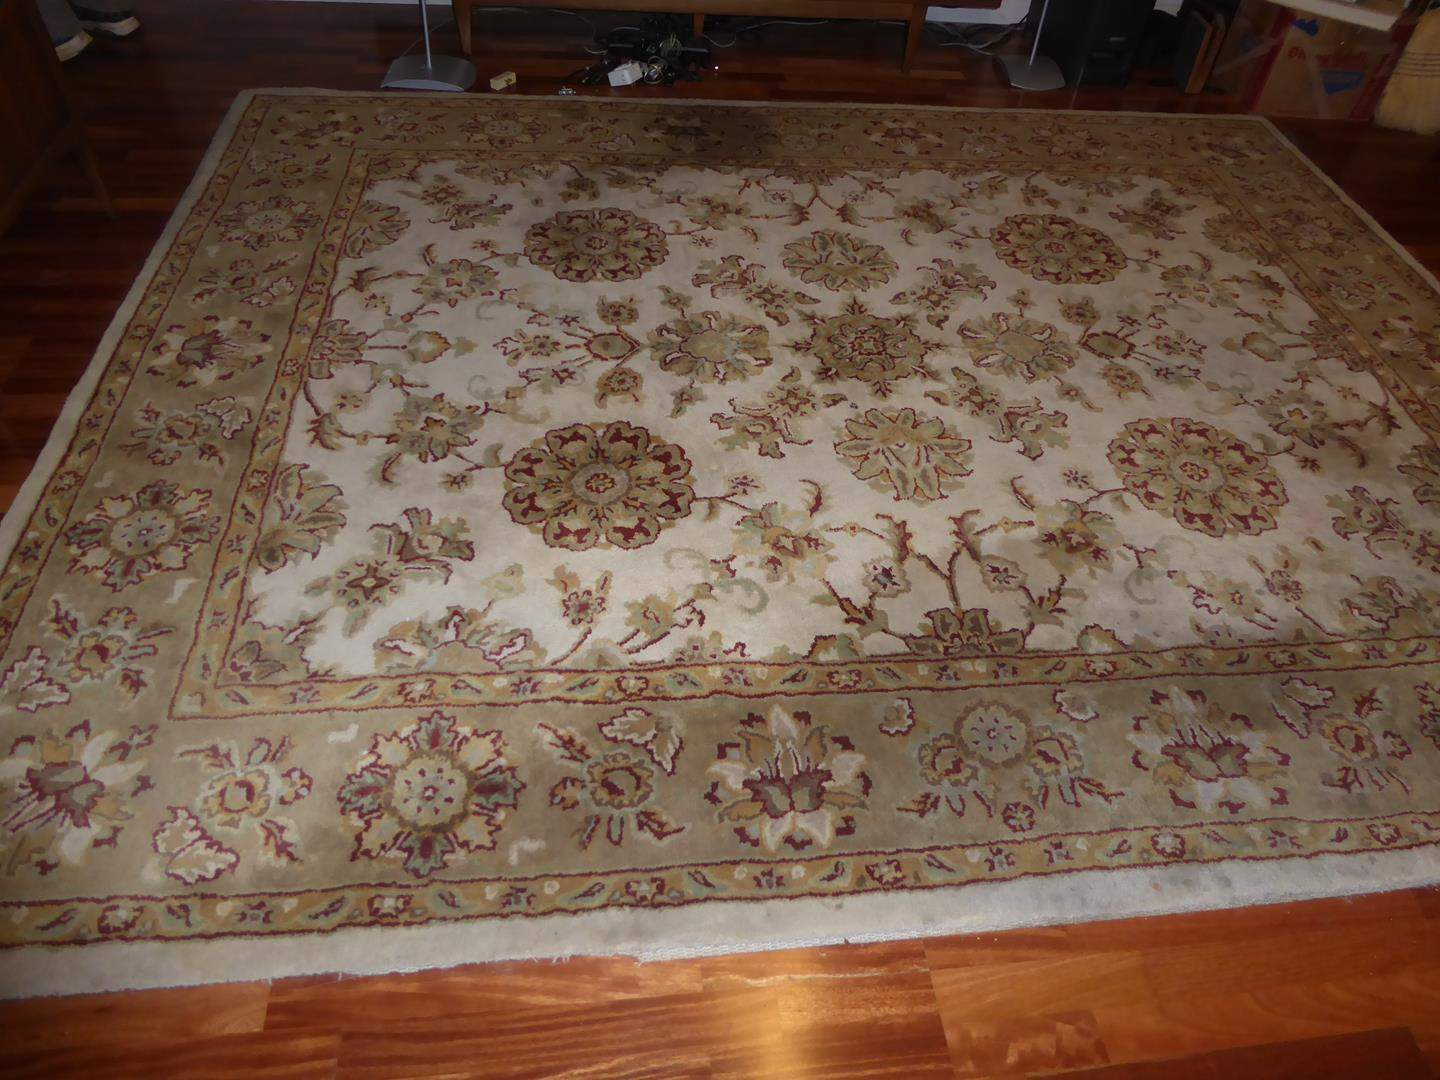 Lot # 58 - 'Legacy' 100% Wool Hand Tufted Area Rug Made in India (main image)